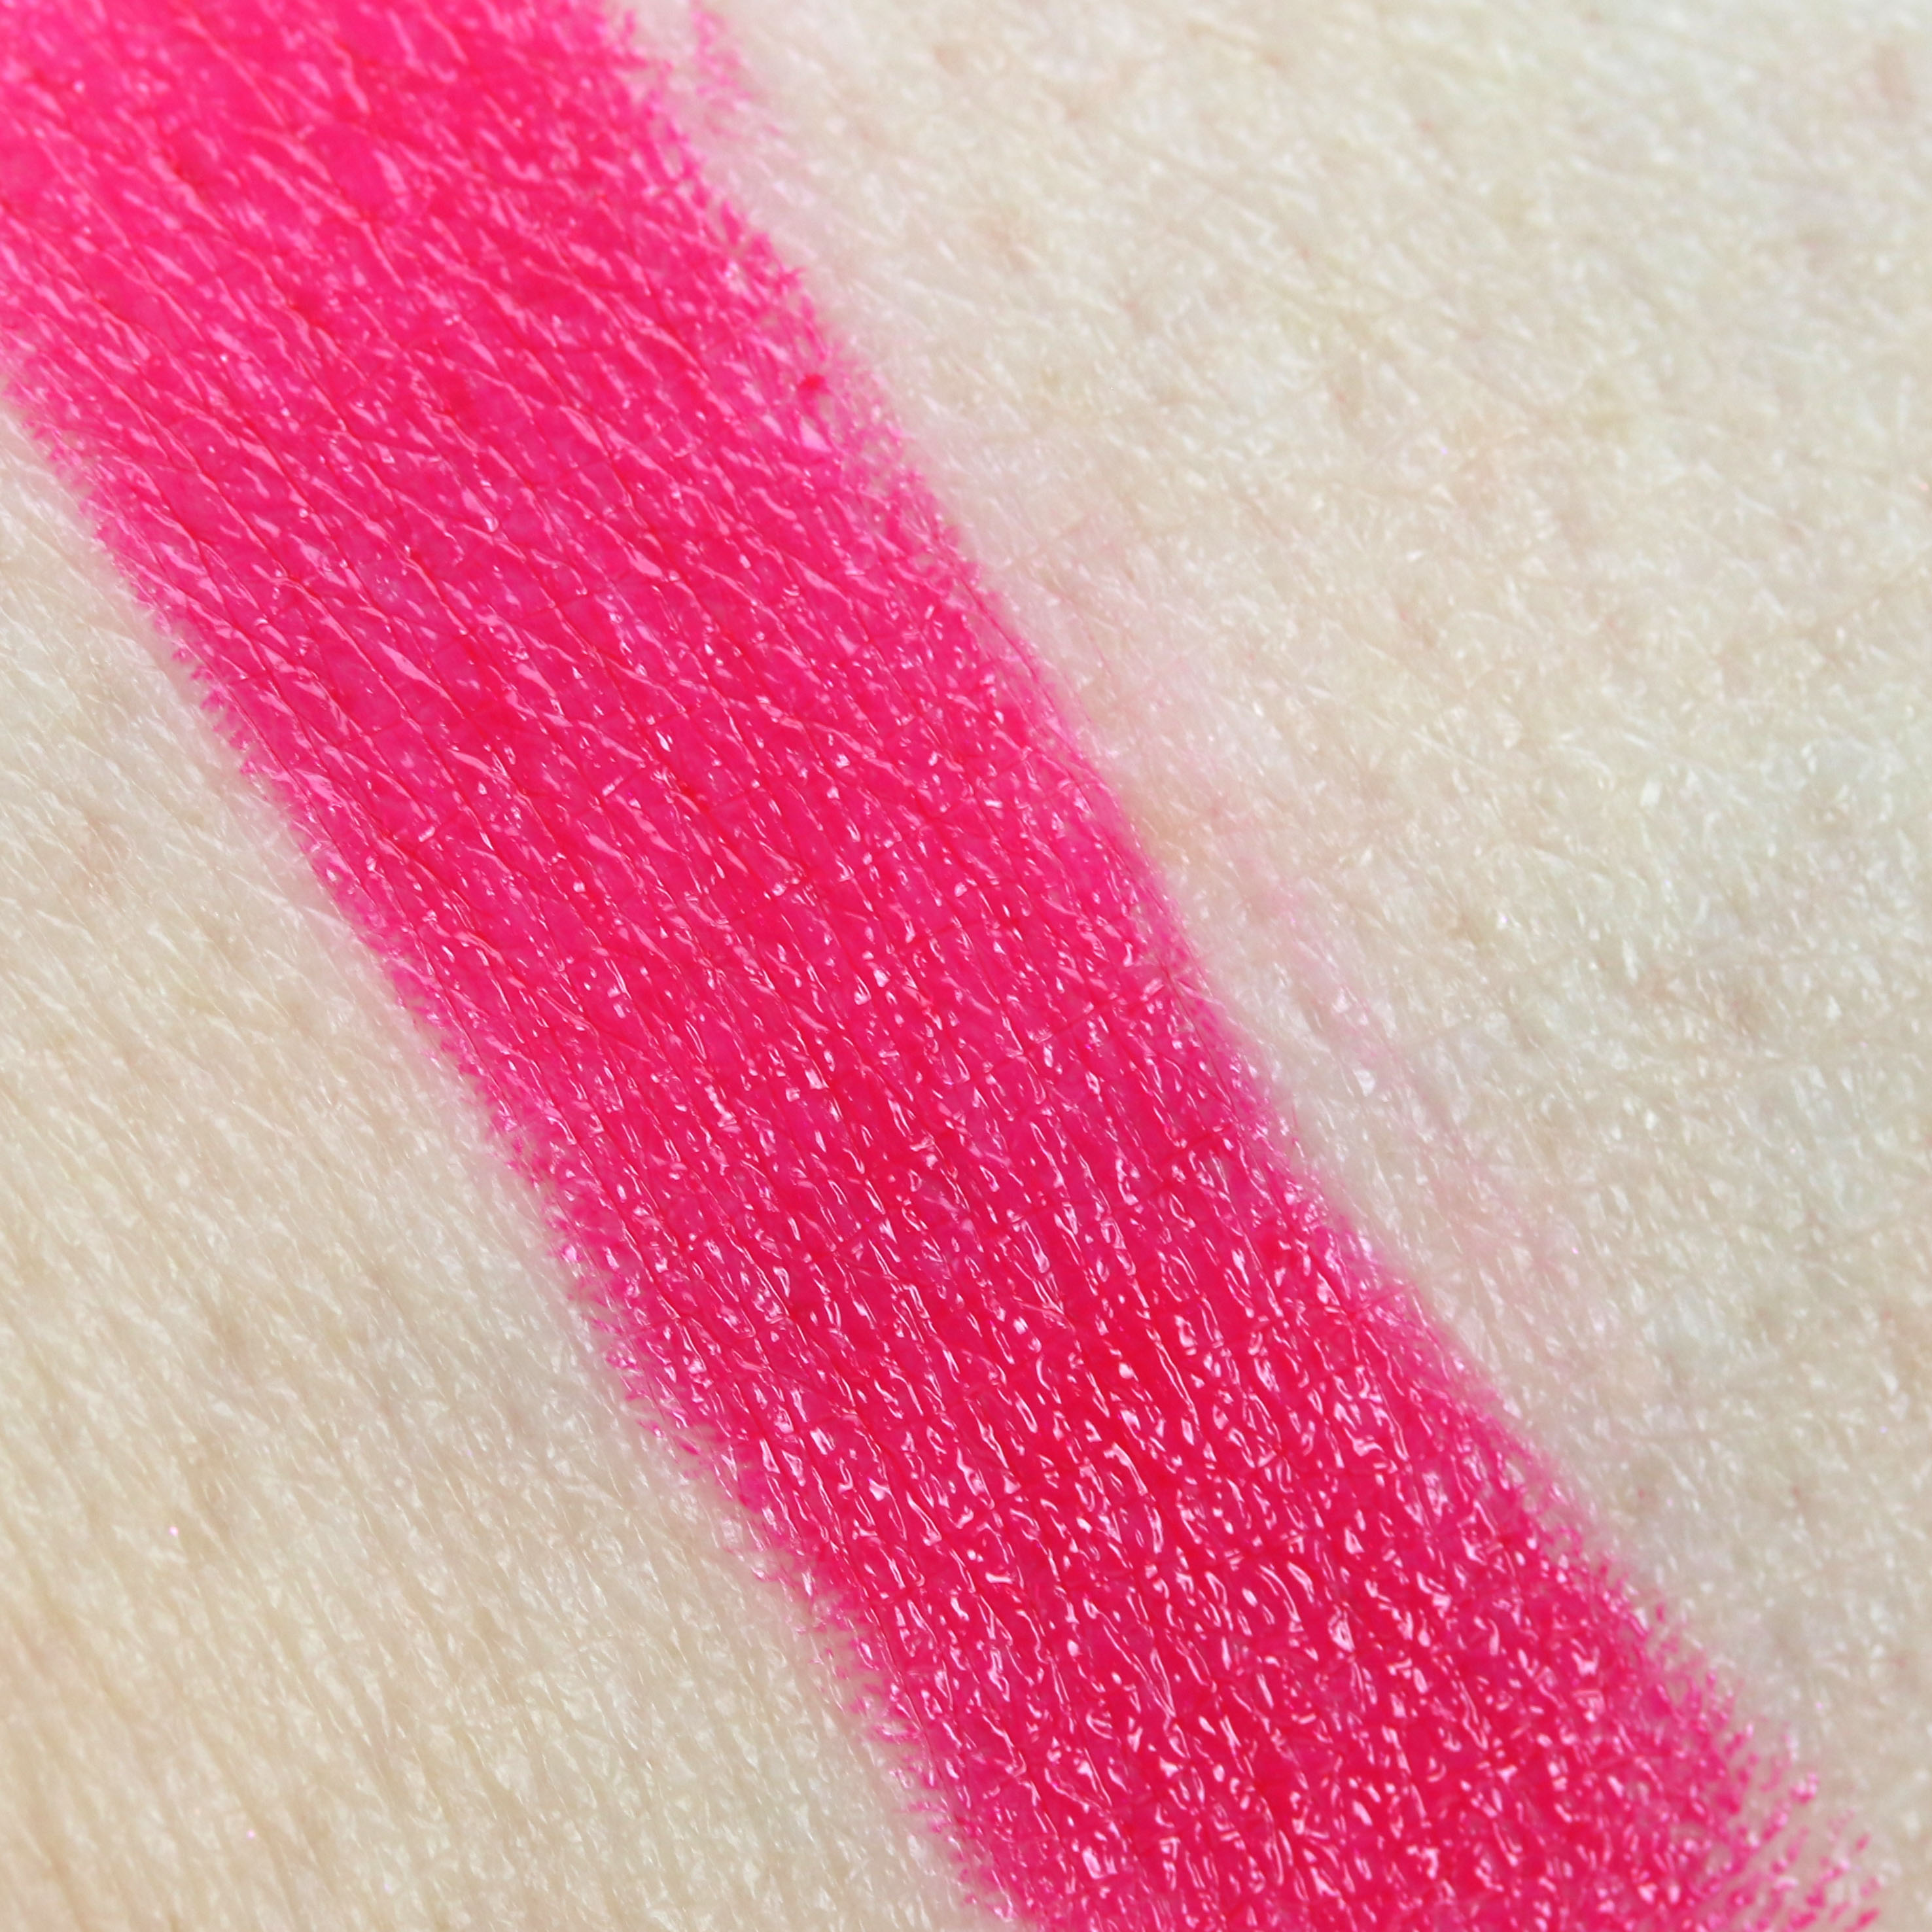 Loreal Sexy Balm 202 Adventure Swatch